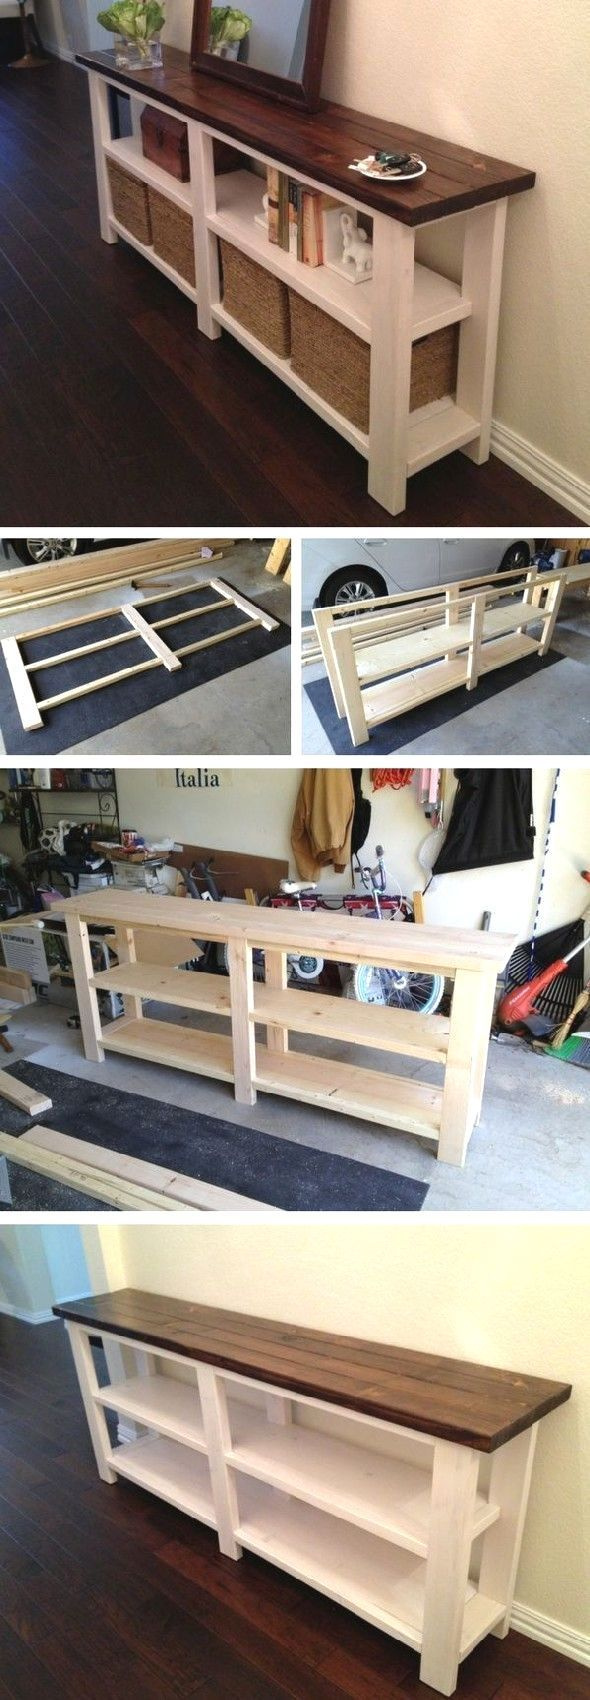 Cheap DIY Furniture Ideas #cheapdiyhomedecor